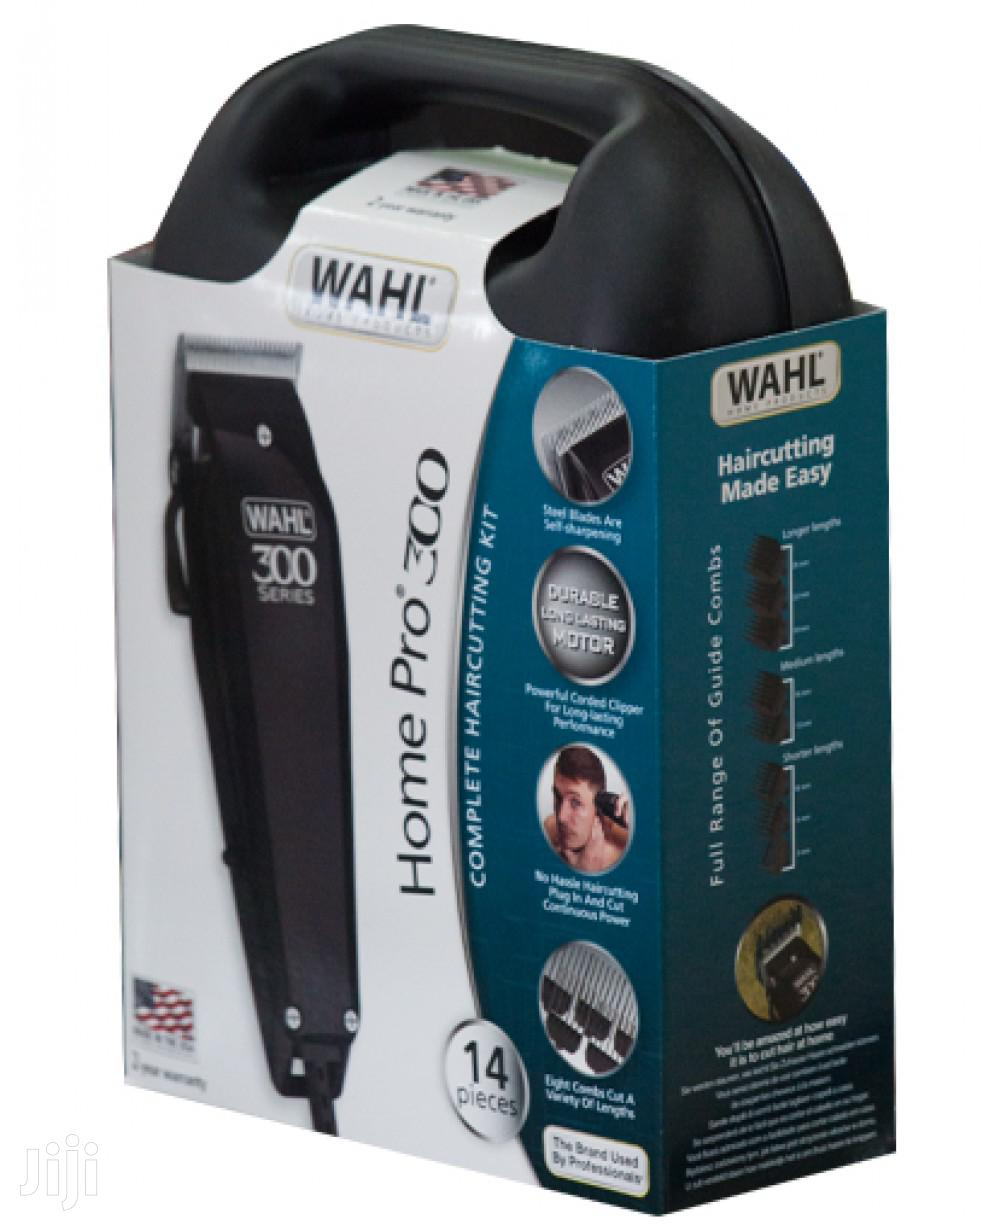 Wahl Hair Clipper/ Home Pro 300